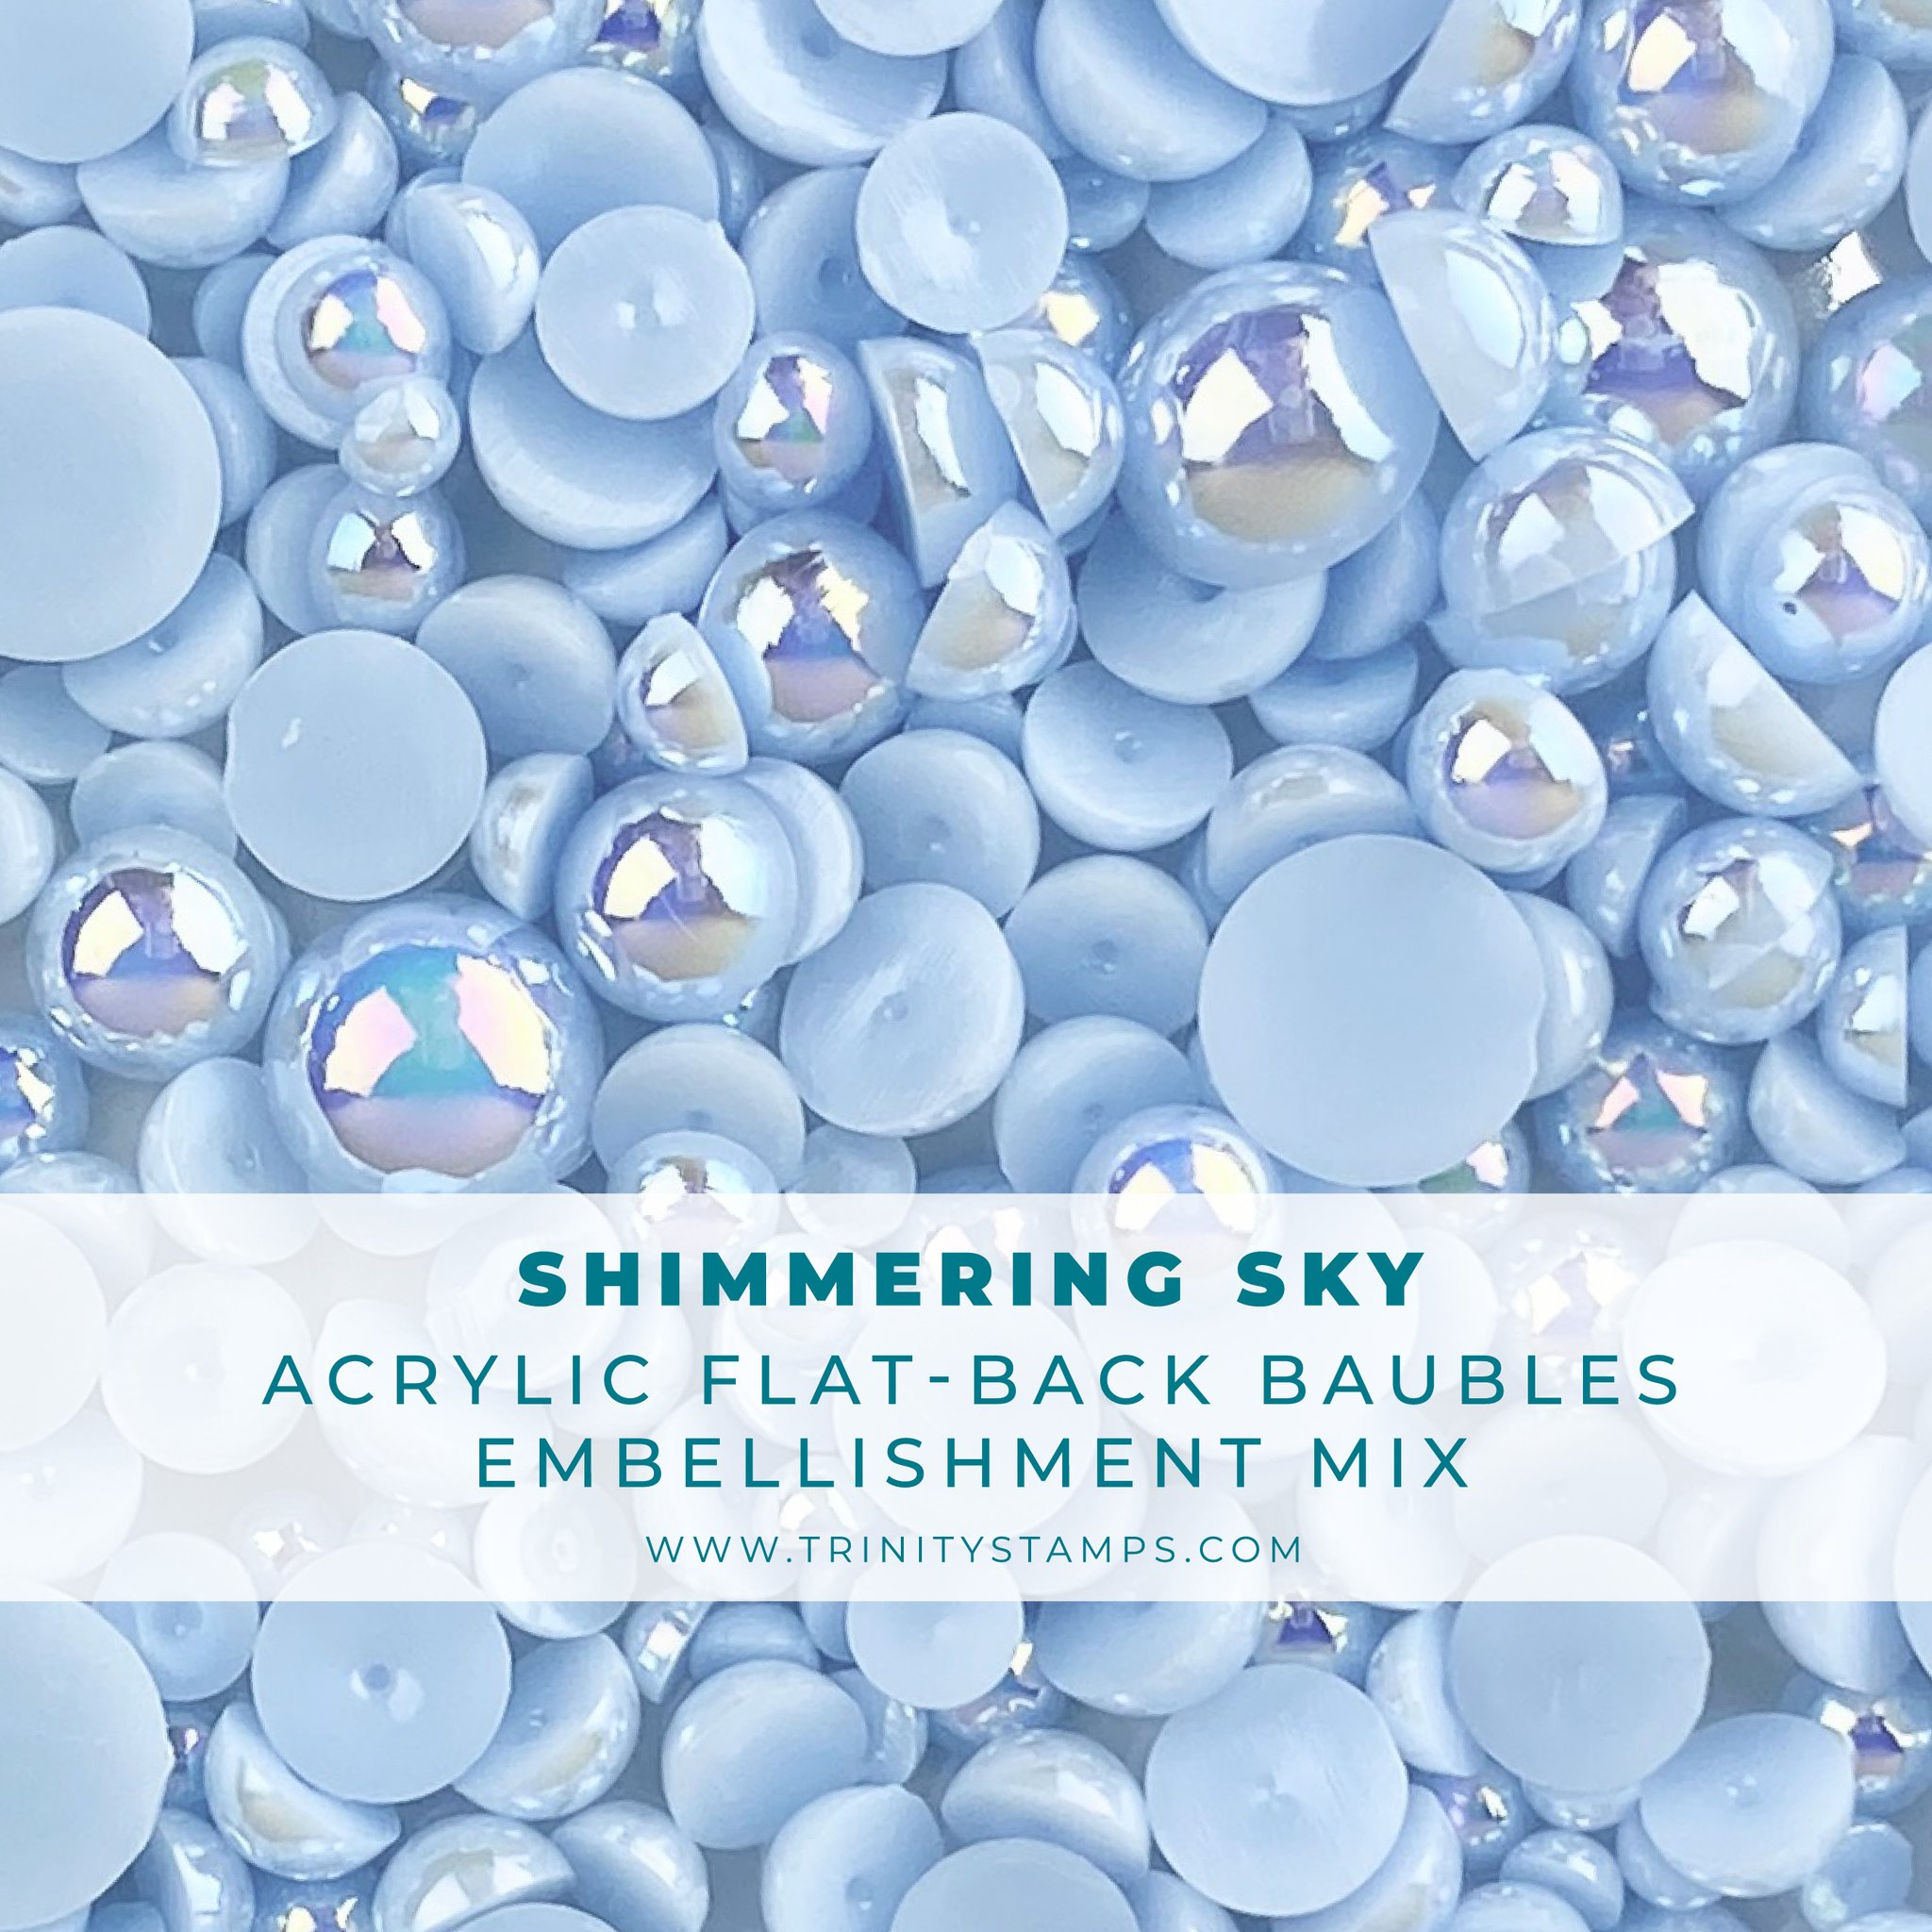 *NEW* - Trinity Stamps - Shimmering Sky Baubles Embellishment Mix